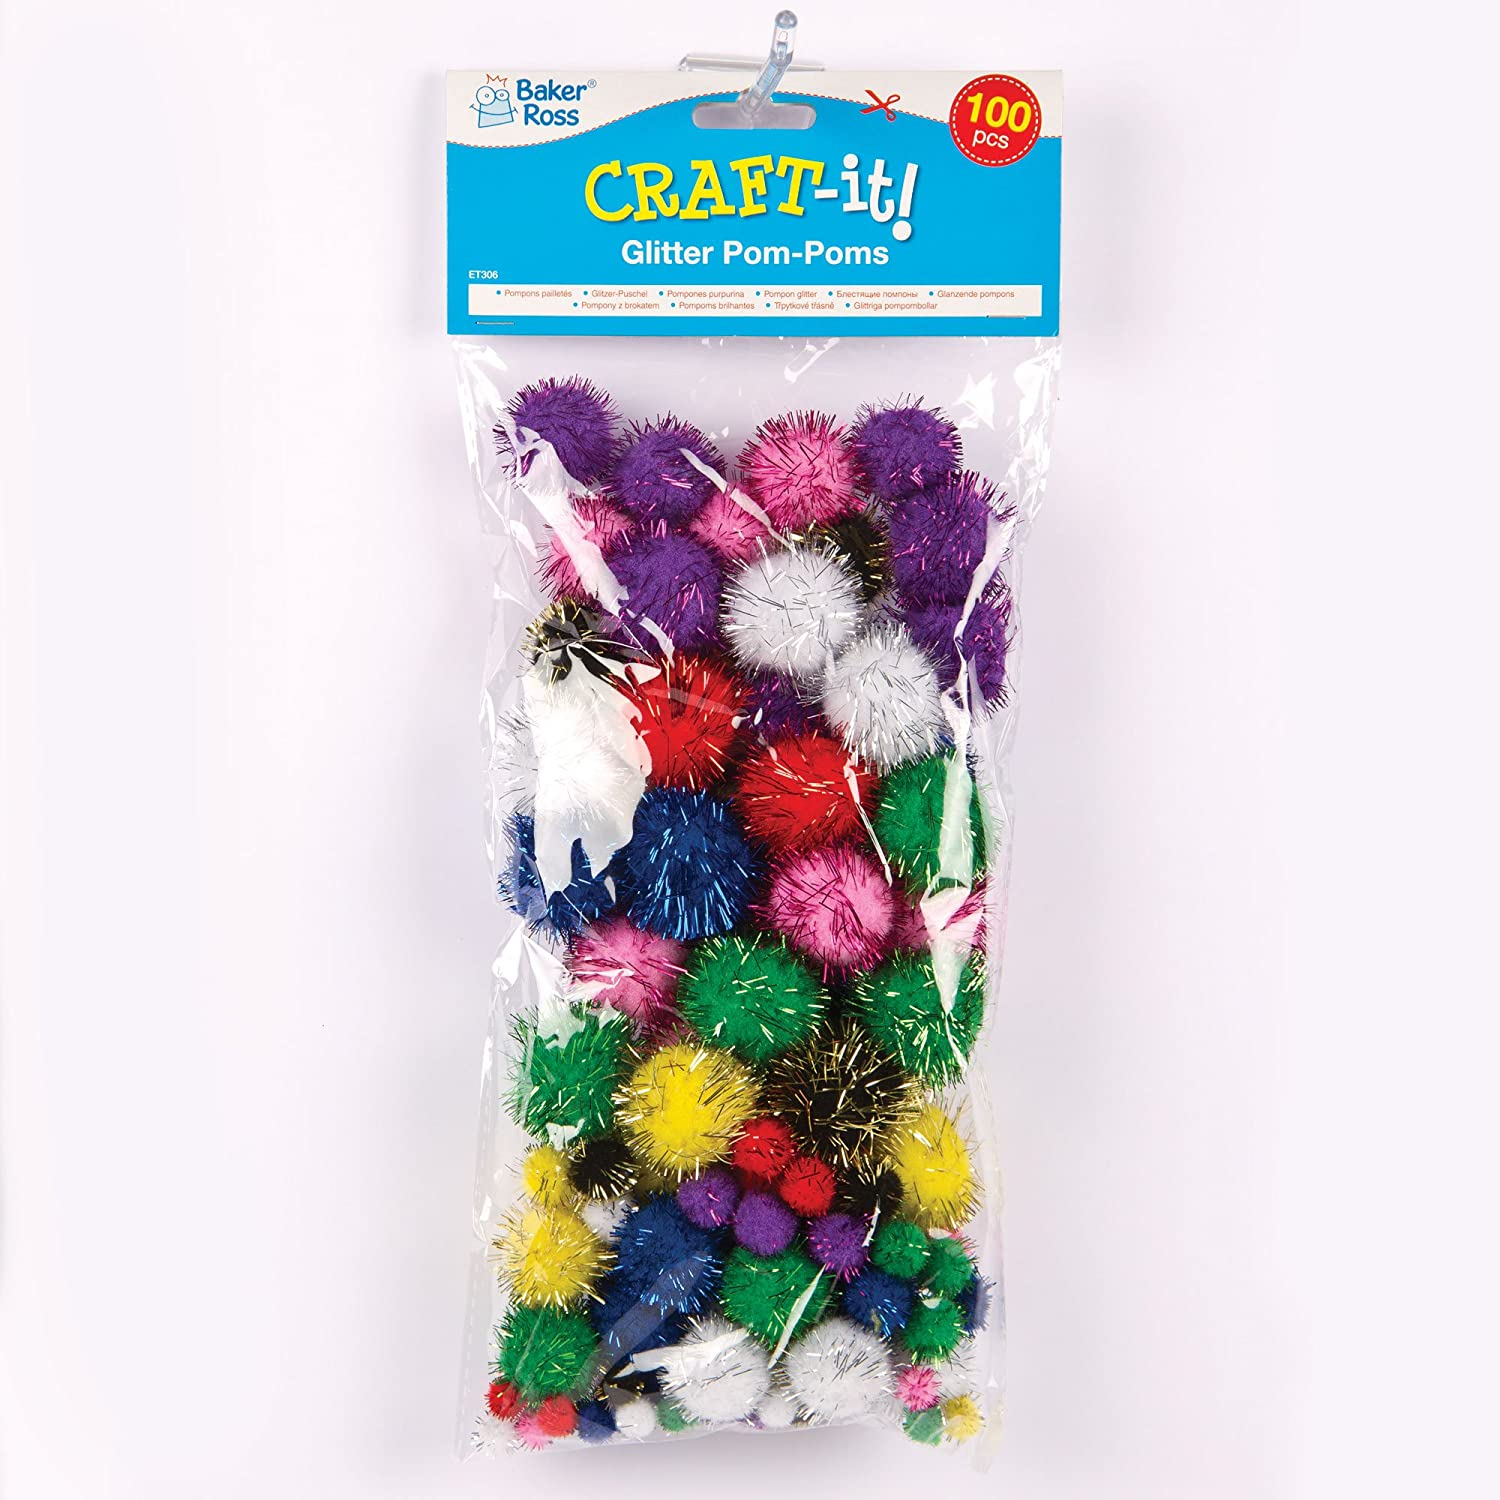 Baker Ross Glitter Pom Poms for Children to Decorate and Embellish Arts & Crafts (Pack of 100)